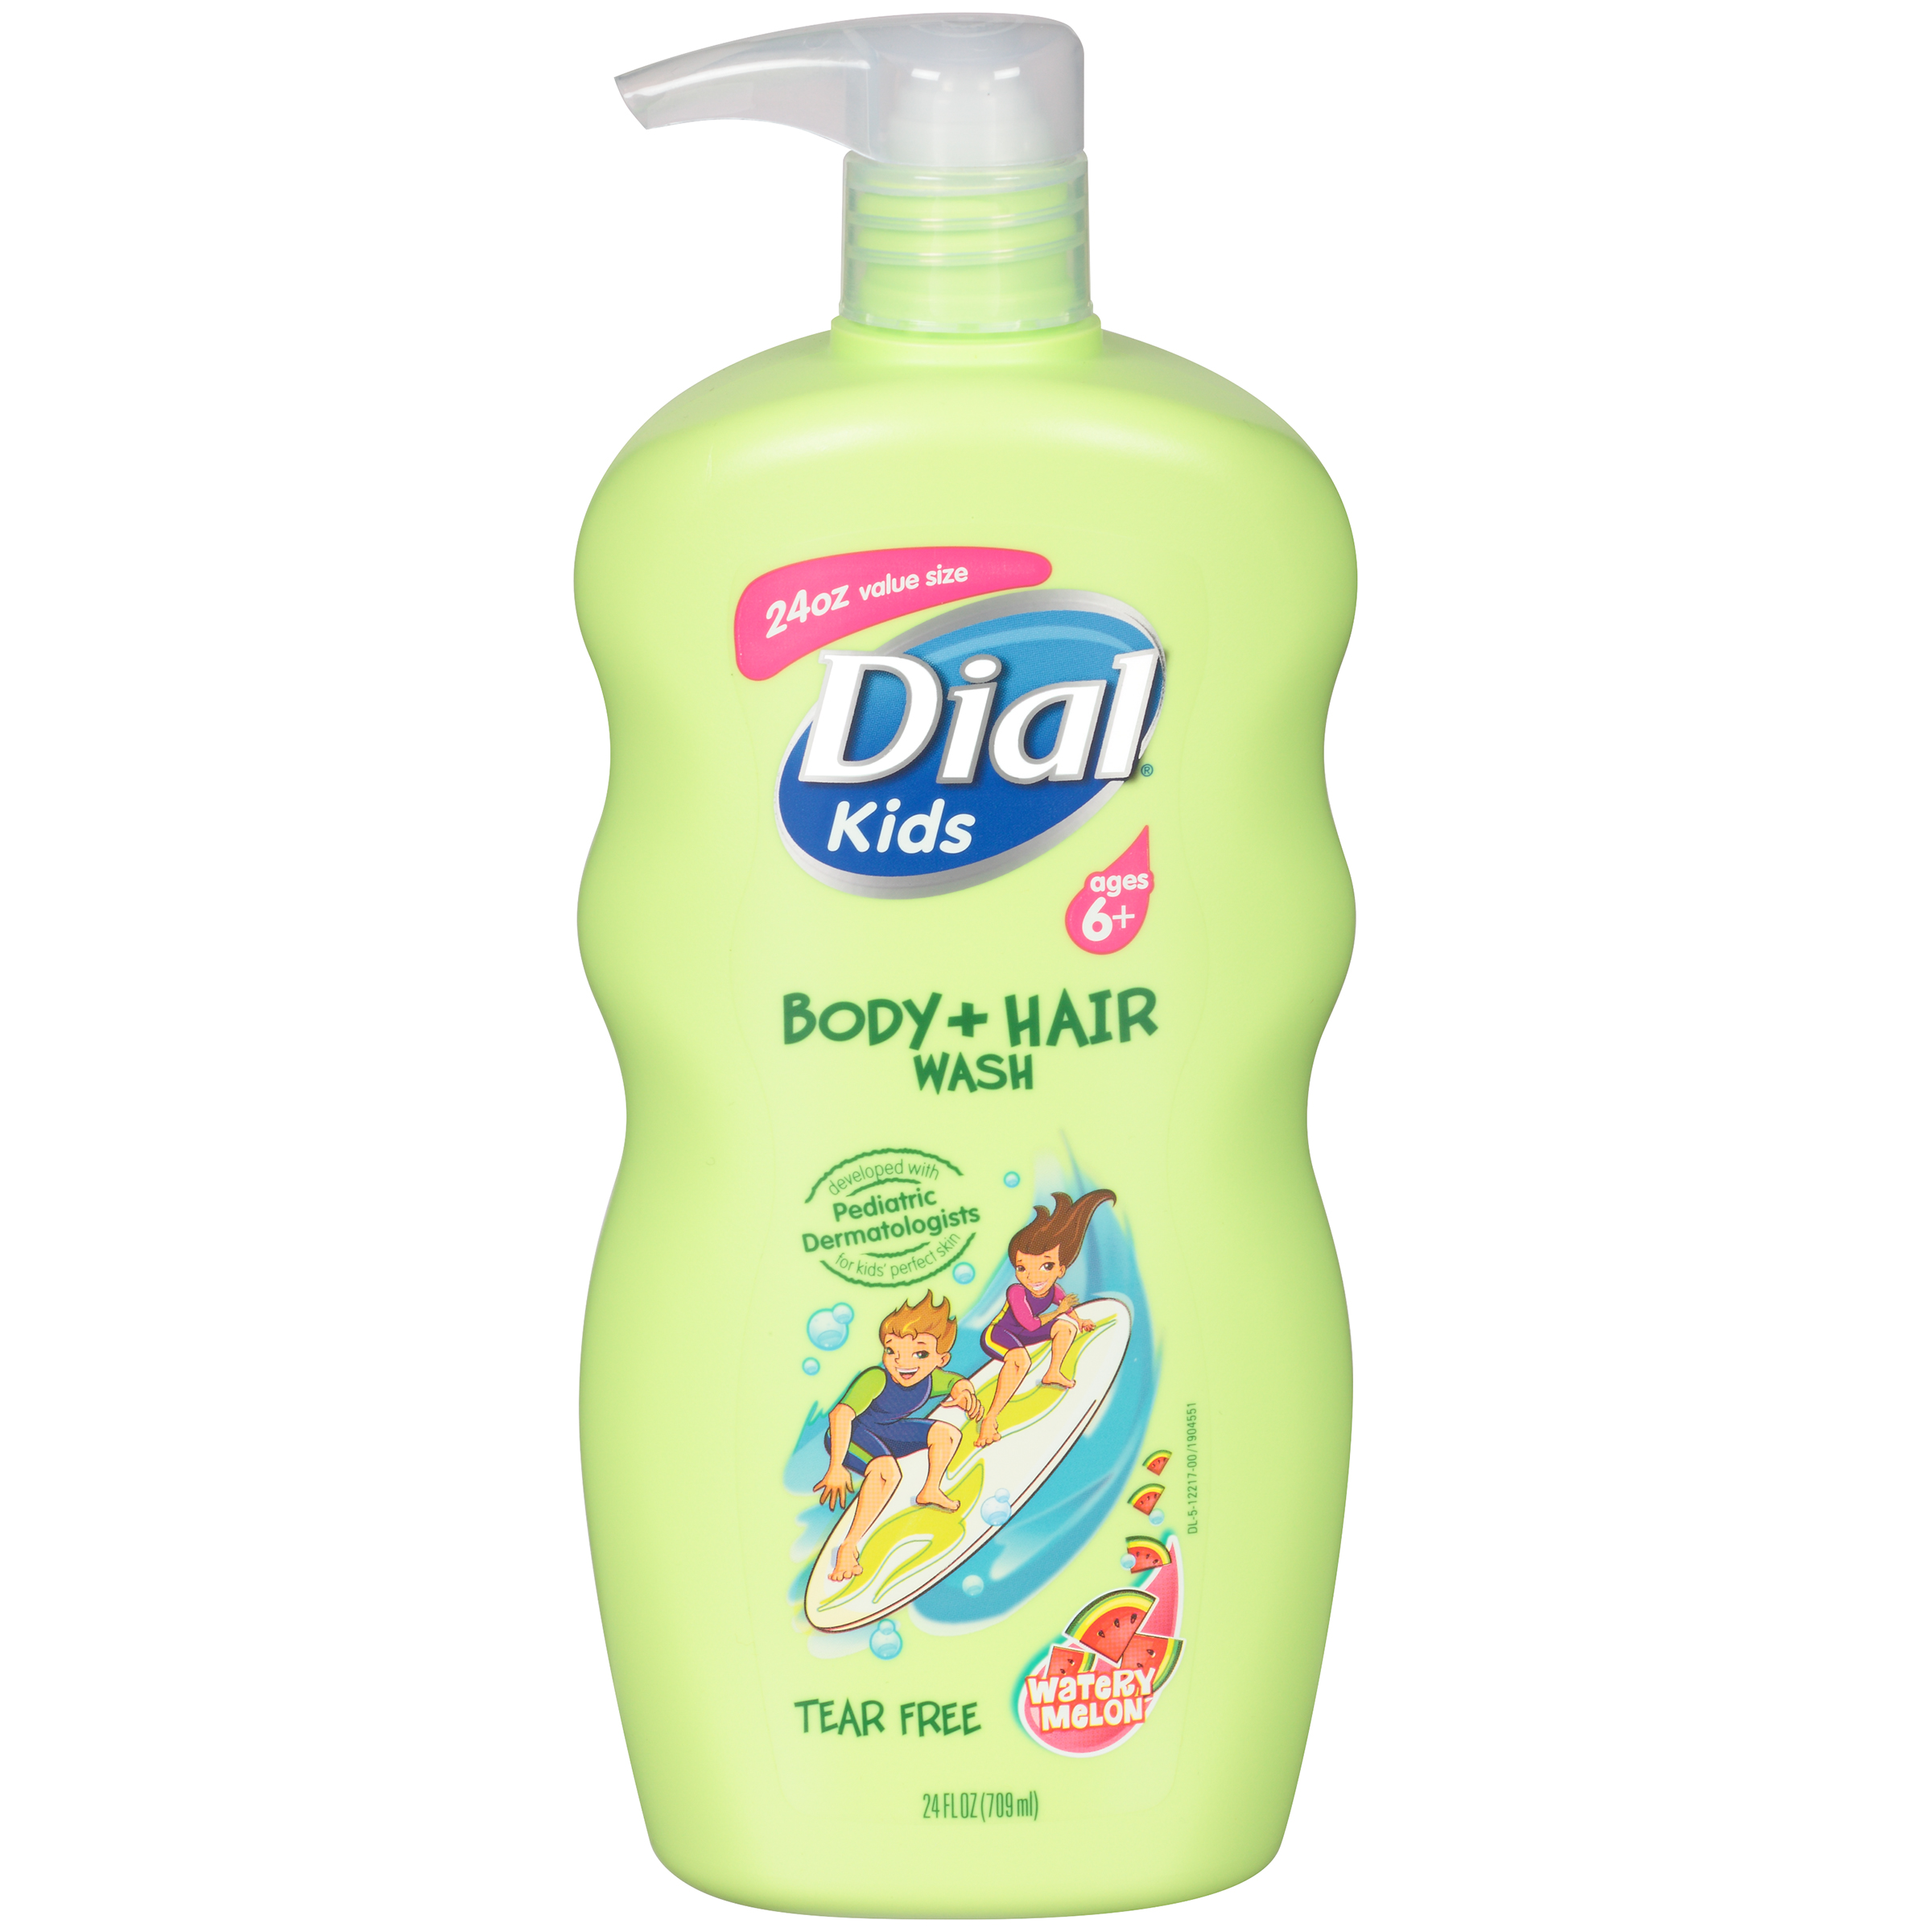 Dial Kids Body + Hair Wash, Watery Melon, 24 Ounce